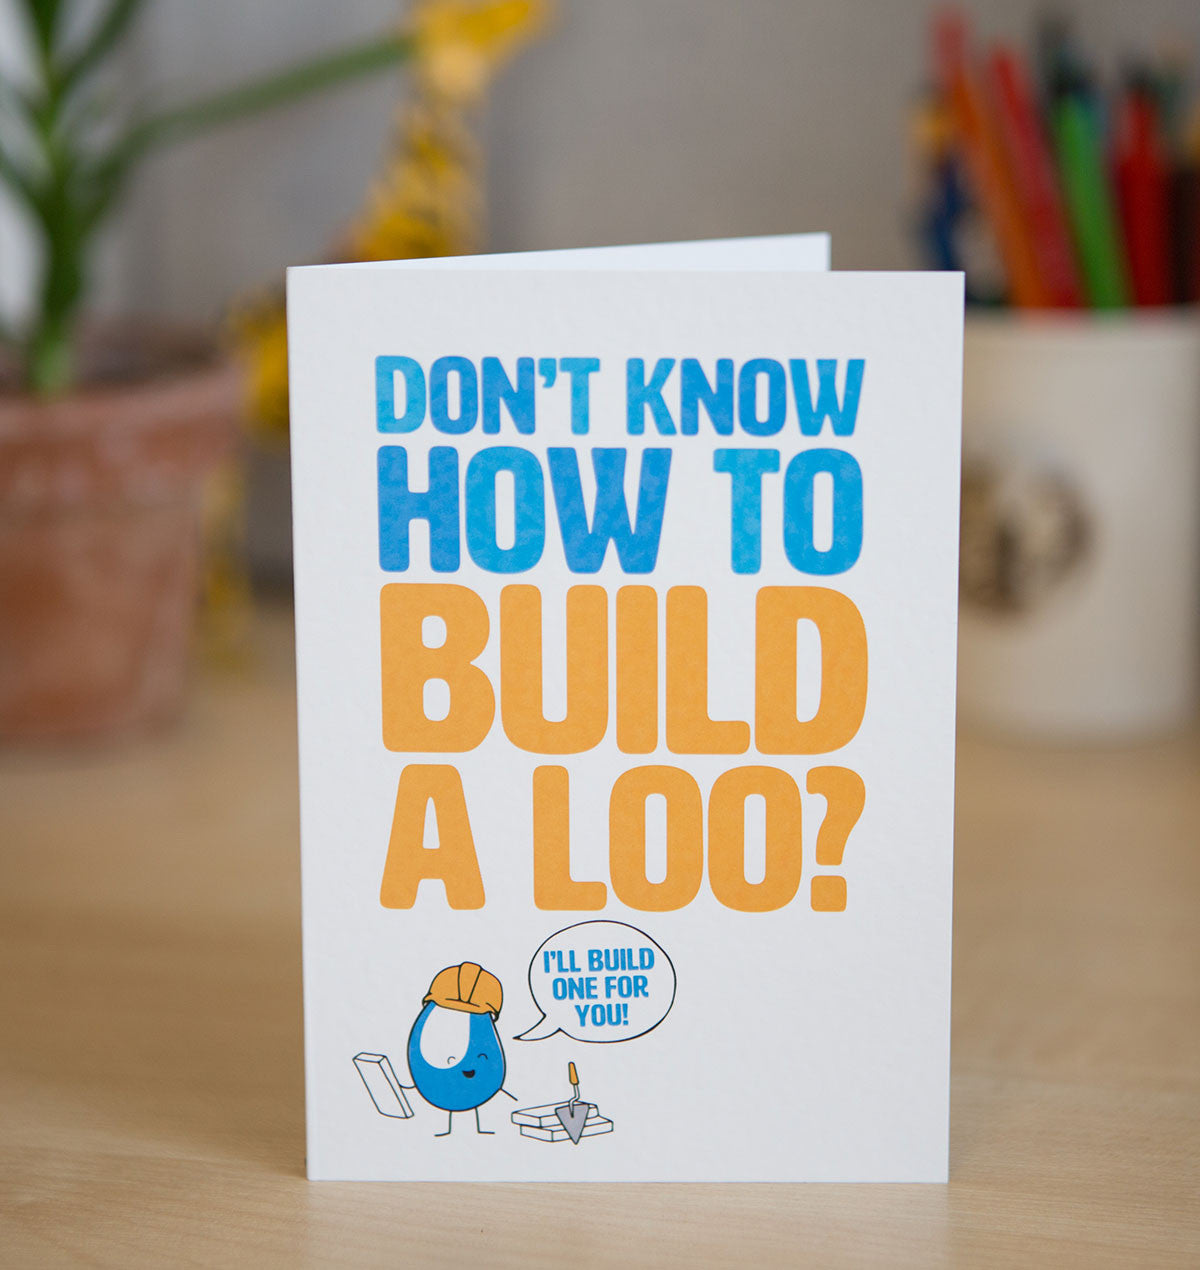 Every family deserves access to a clean loo that they can call their own and this card does just that. It provides them with a mason who can make this a reality.